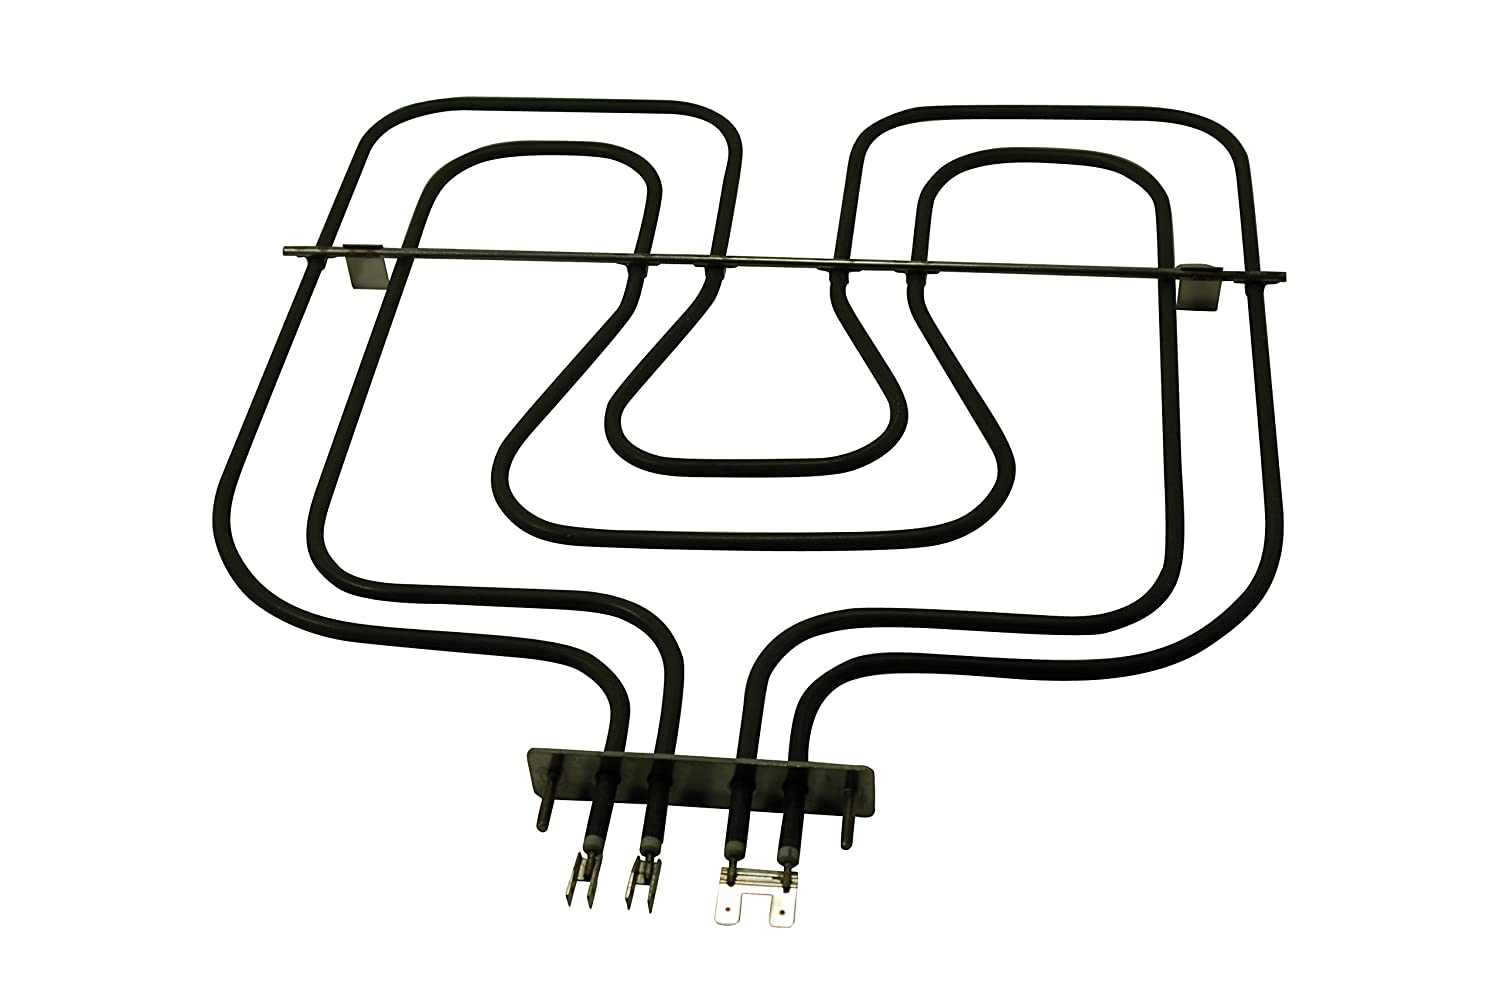 Aeg Electrolux John Lewis Tricity Bendix Zanussi Oven Oven/Grill Heater Element. Equivalent to part number 3570411037 EL14112